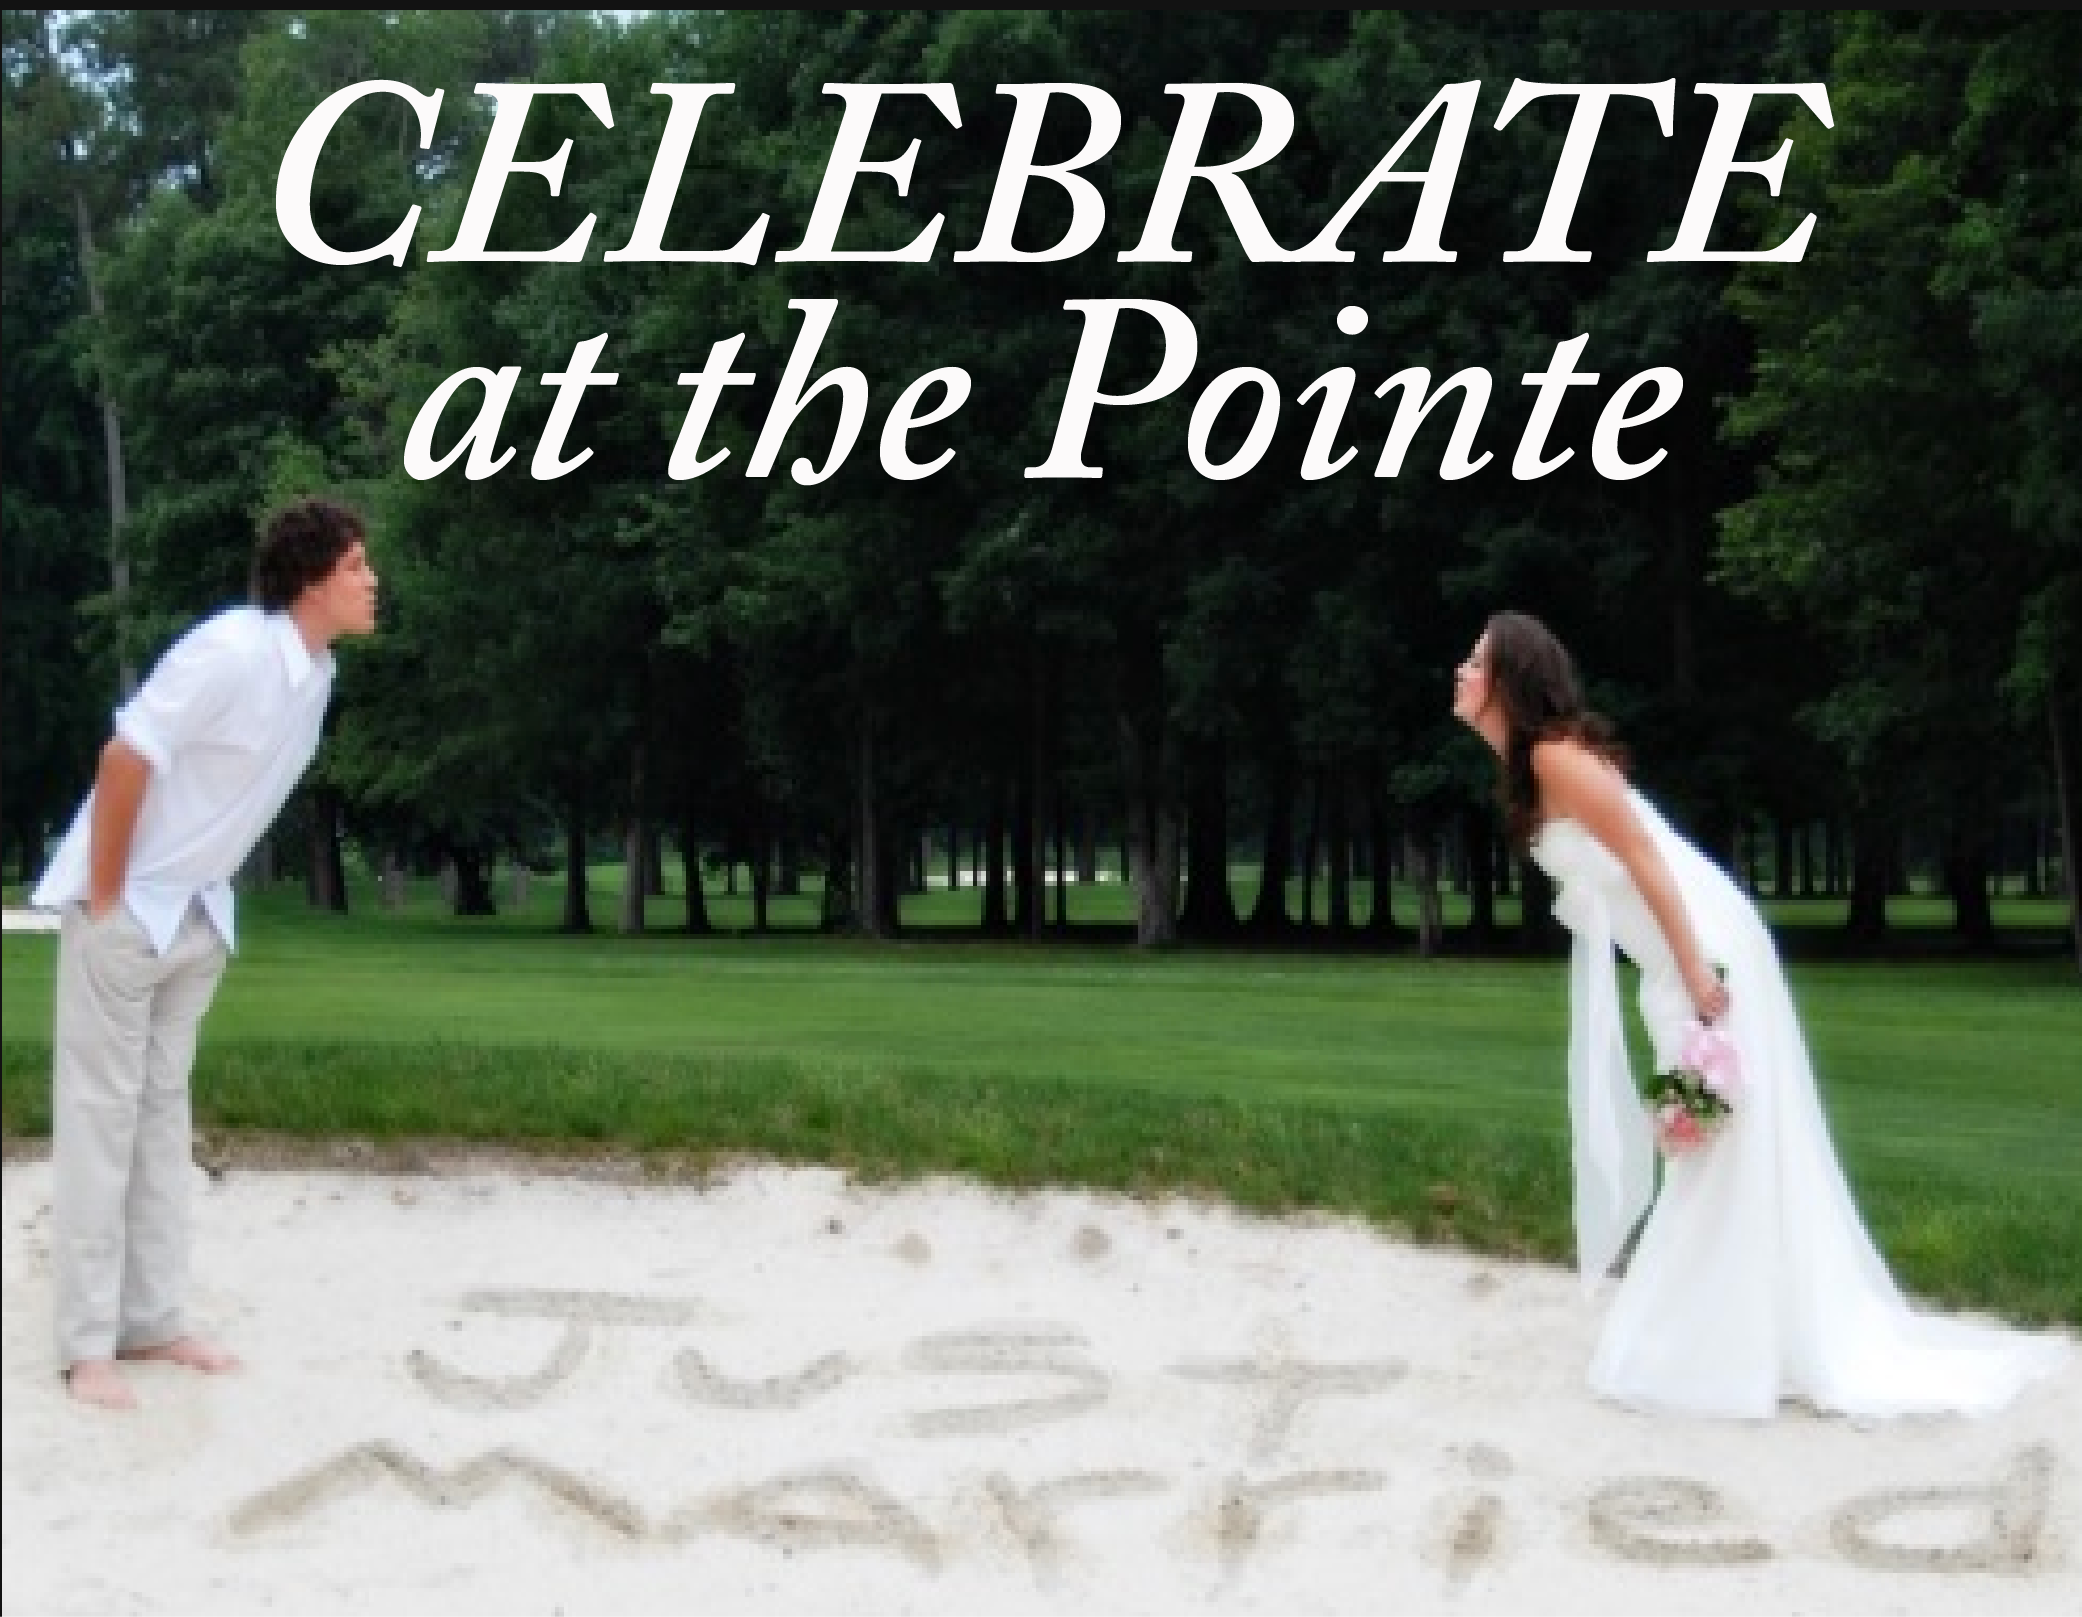 Celebrate @The Pointe - Weddings, Receptions, Reunions, Showers, Meetings.....the Only Limit is Your Vision. We Provide Full Catering Services & Staff Seeking to Make Your Special Day Memorable!